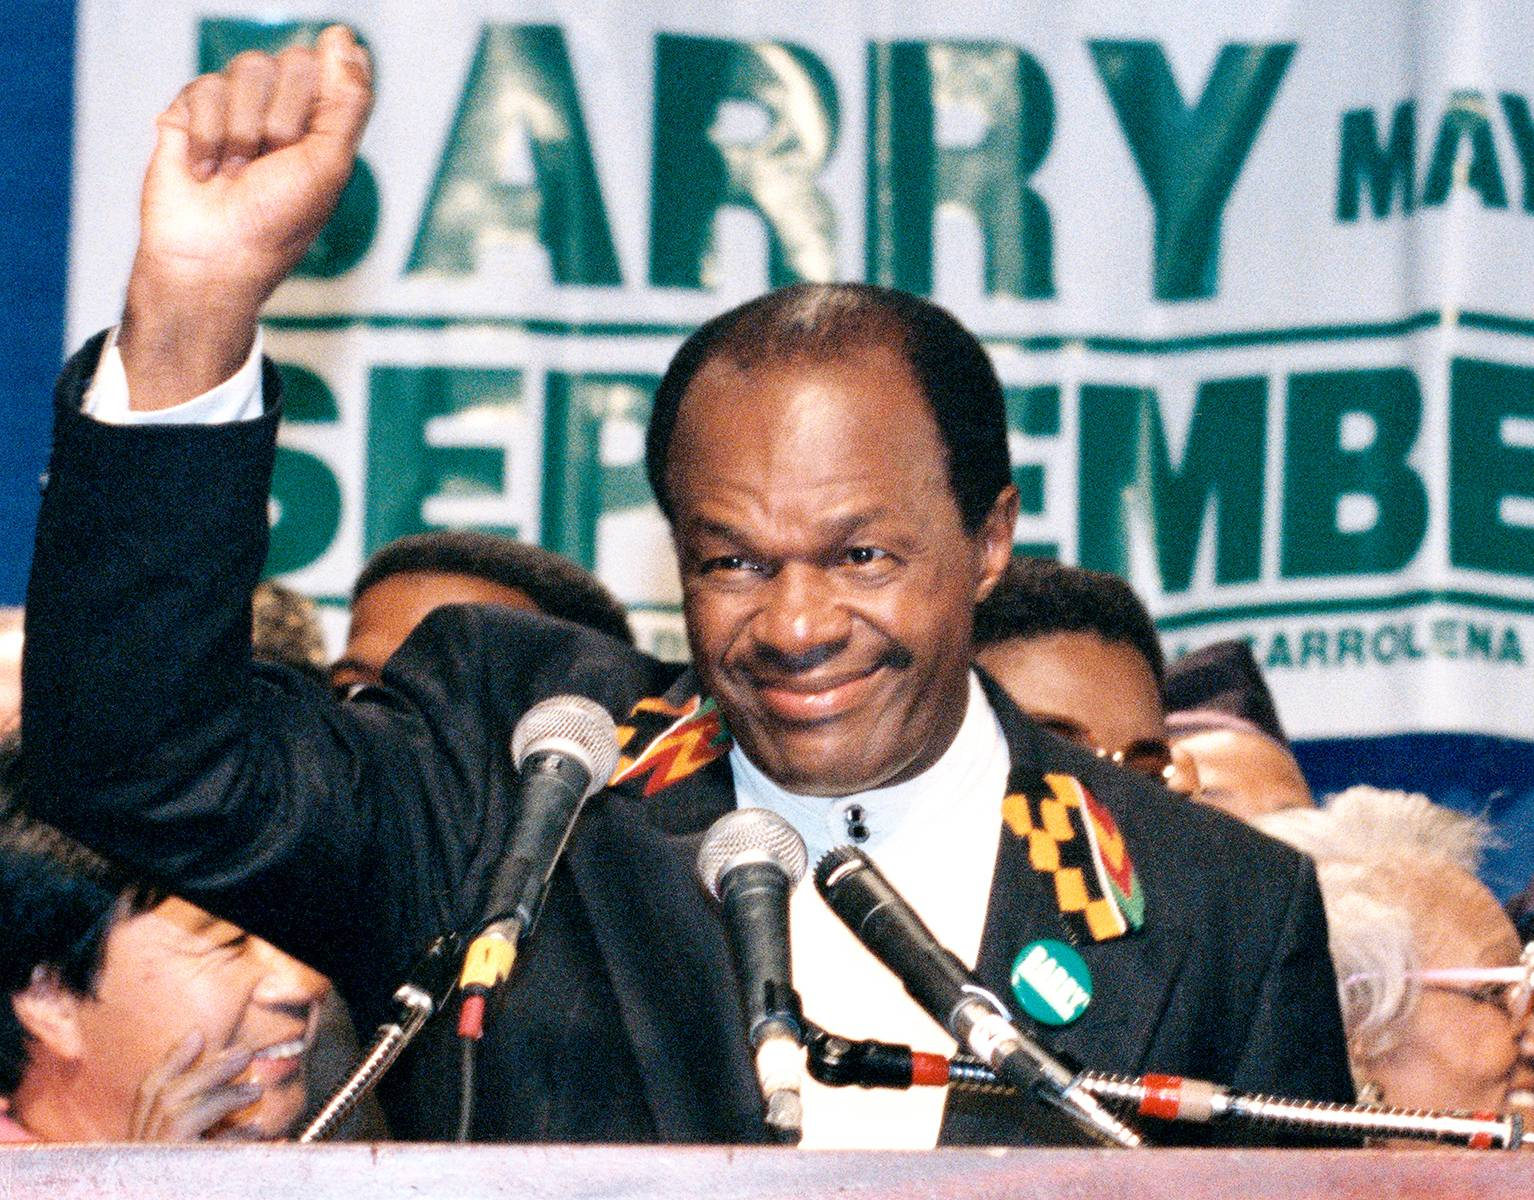 The Comeback Kid - After serving a six-month prison sentence, Barry won a seat on the city council in 1992 and two years later was elected to a fourth term as mayor. But with the city on the verge of bankruptcy, Congress stripped him of most of his power.   (Photo: Ron Thomas/Reuters/Corbis)